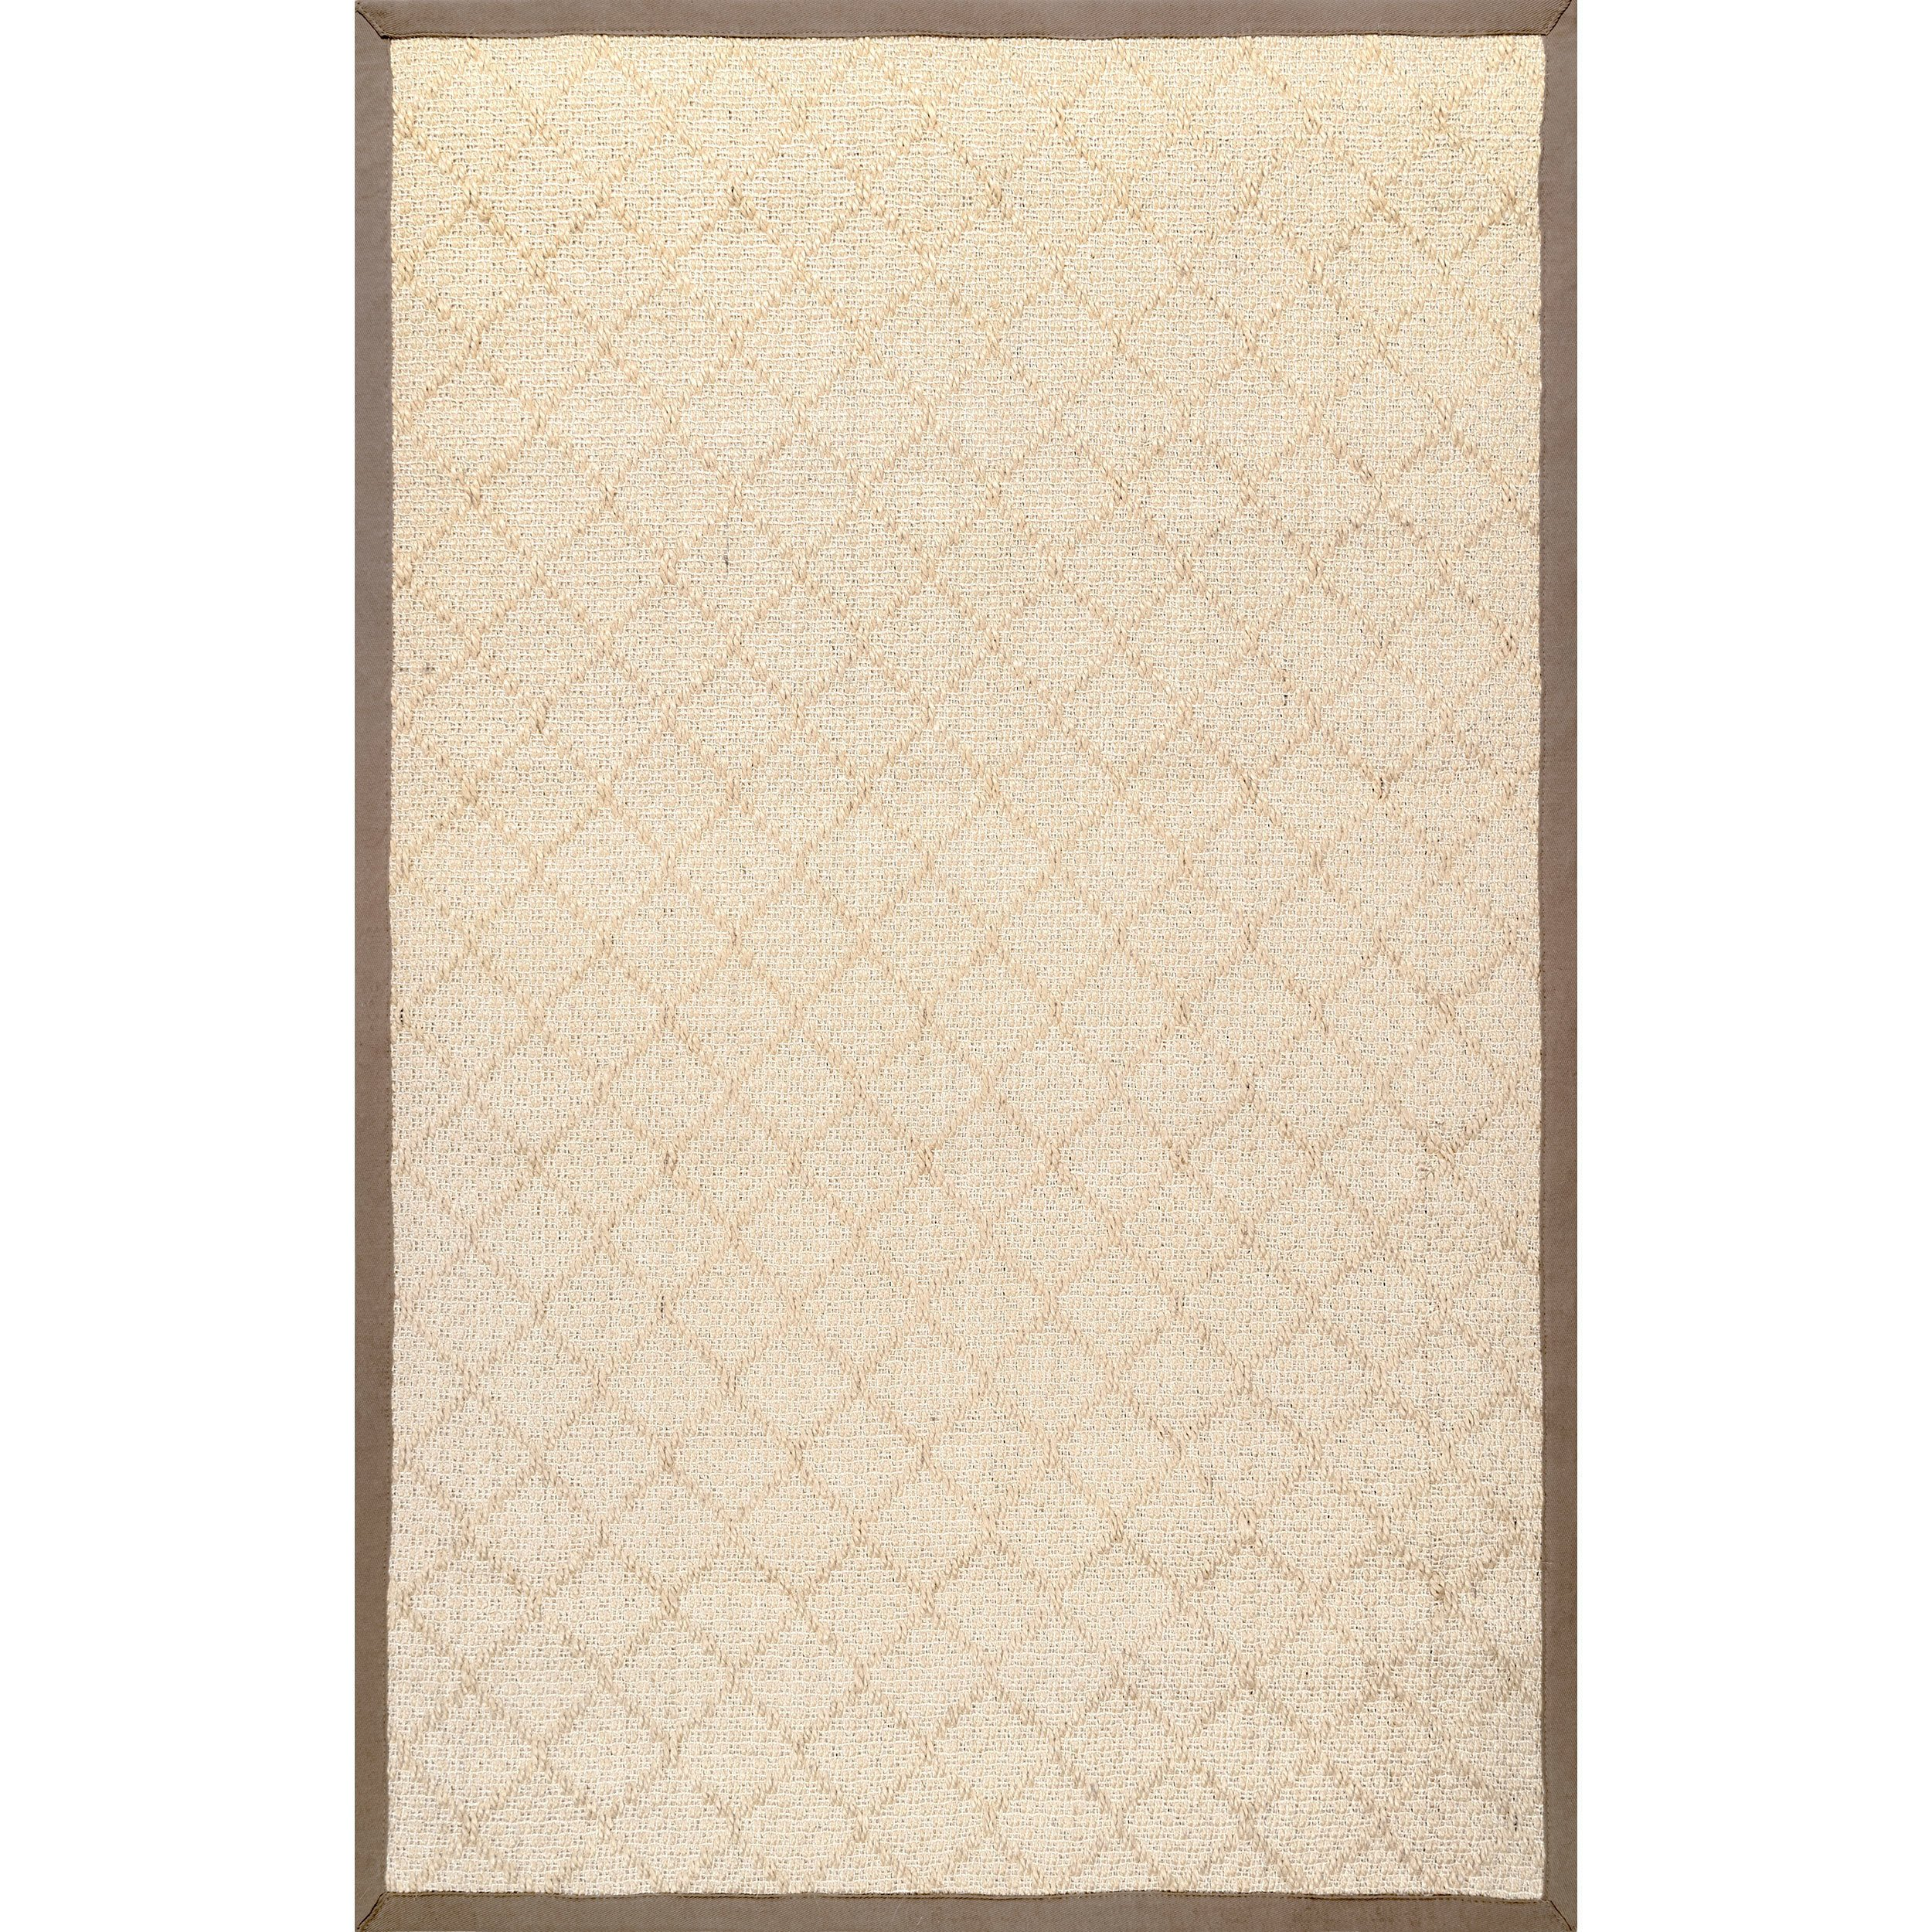 Nuloom Sisal 9' X 12' Rectangle Area Rugs In Natural Finish 200ZHSS04A-9012